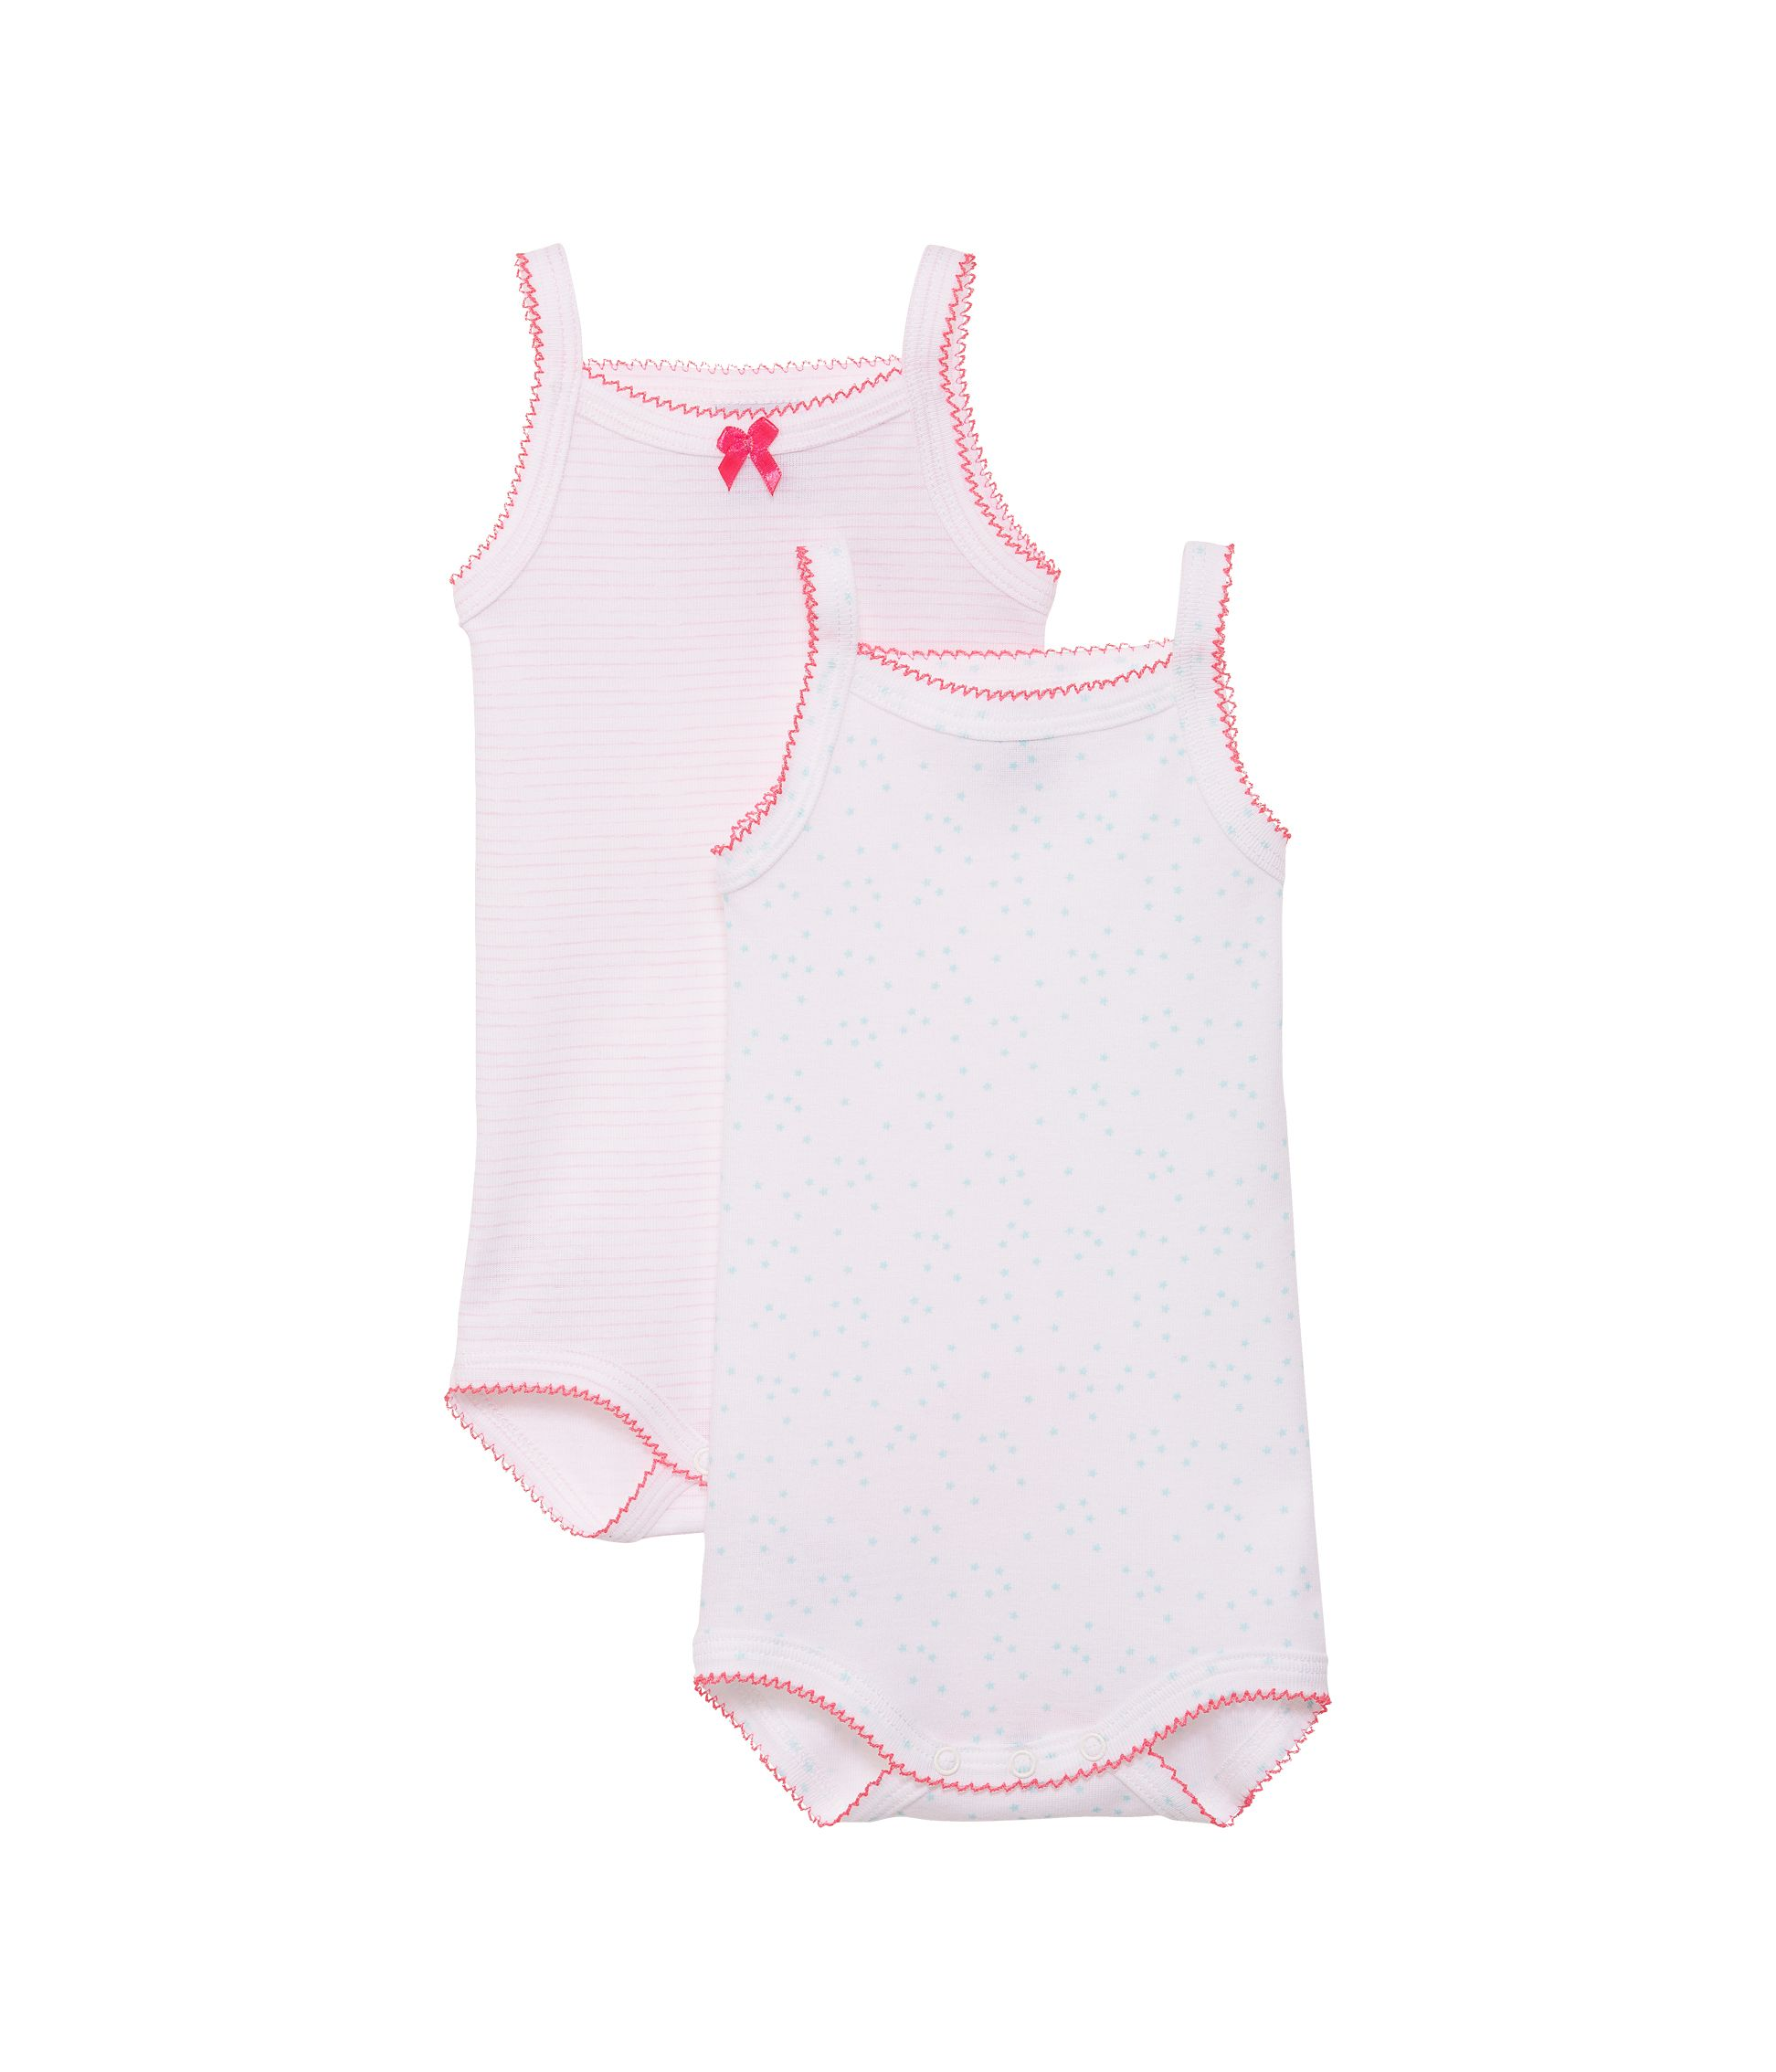 Baby girls 2 pack of bodysuits